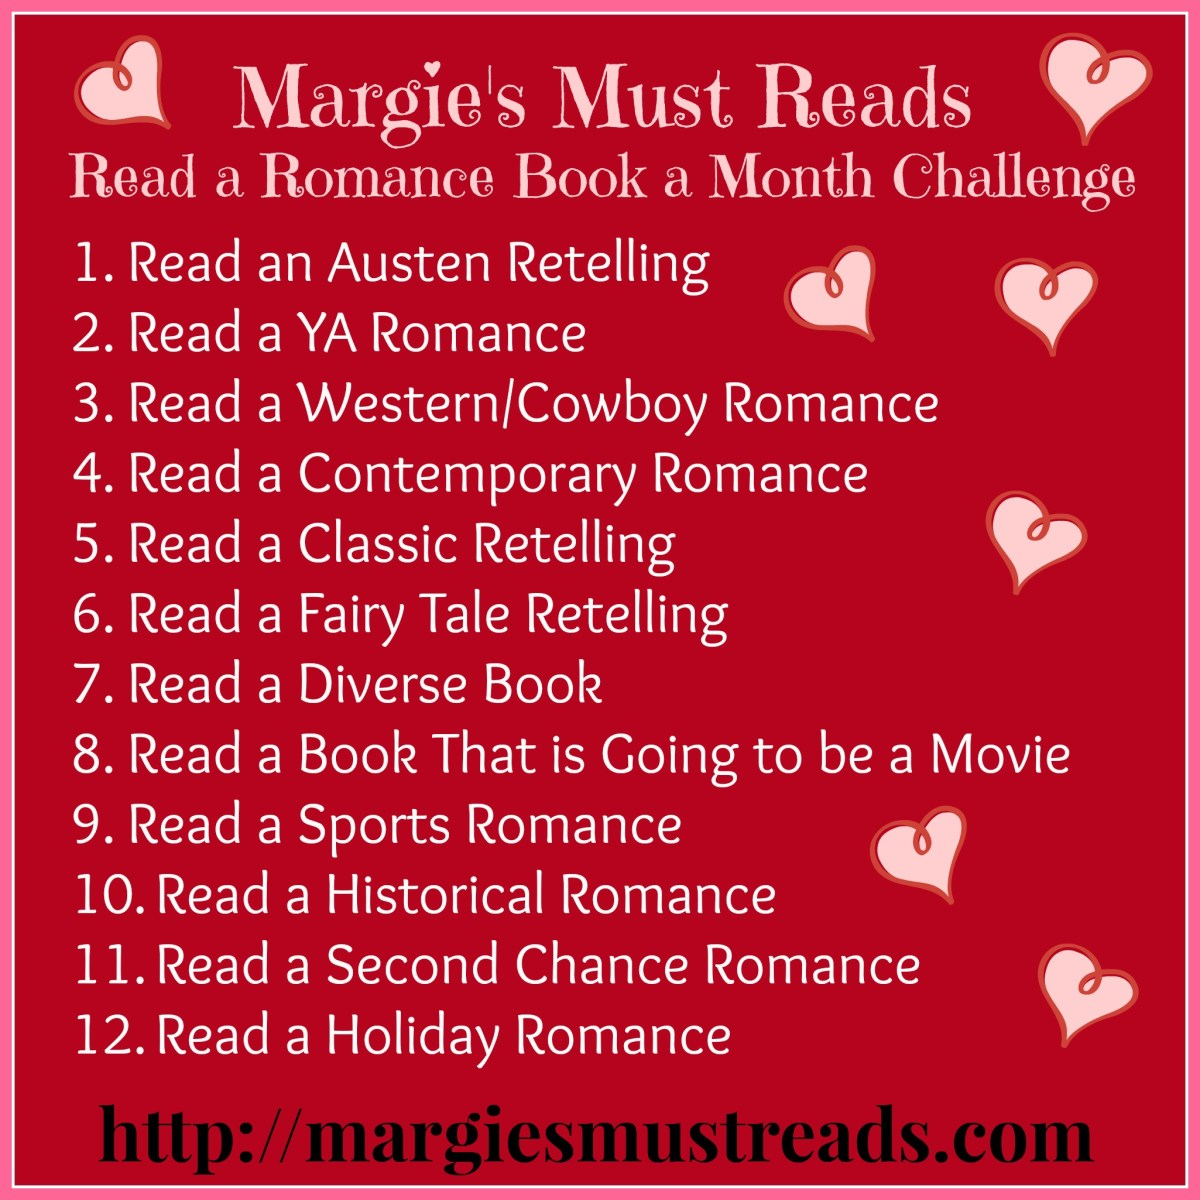 Margie's Must Reads...Read a Romance Book a Month Challenge!